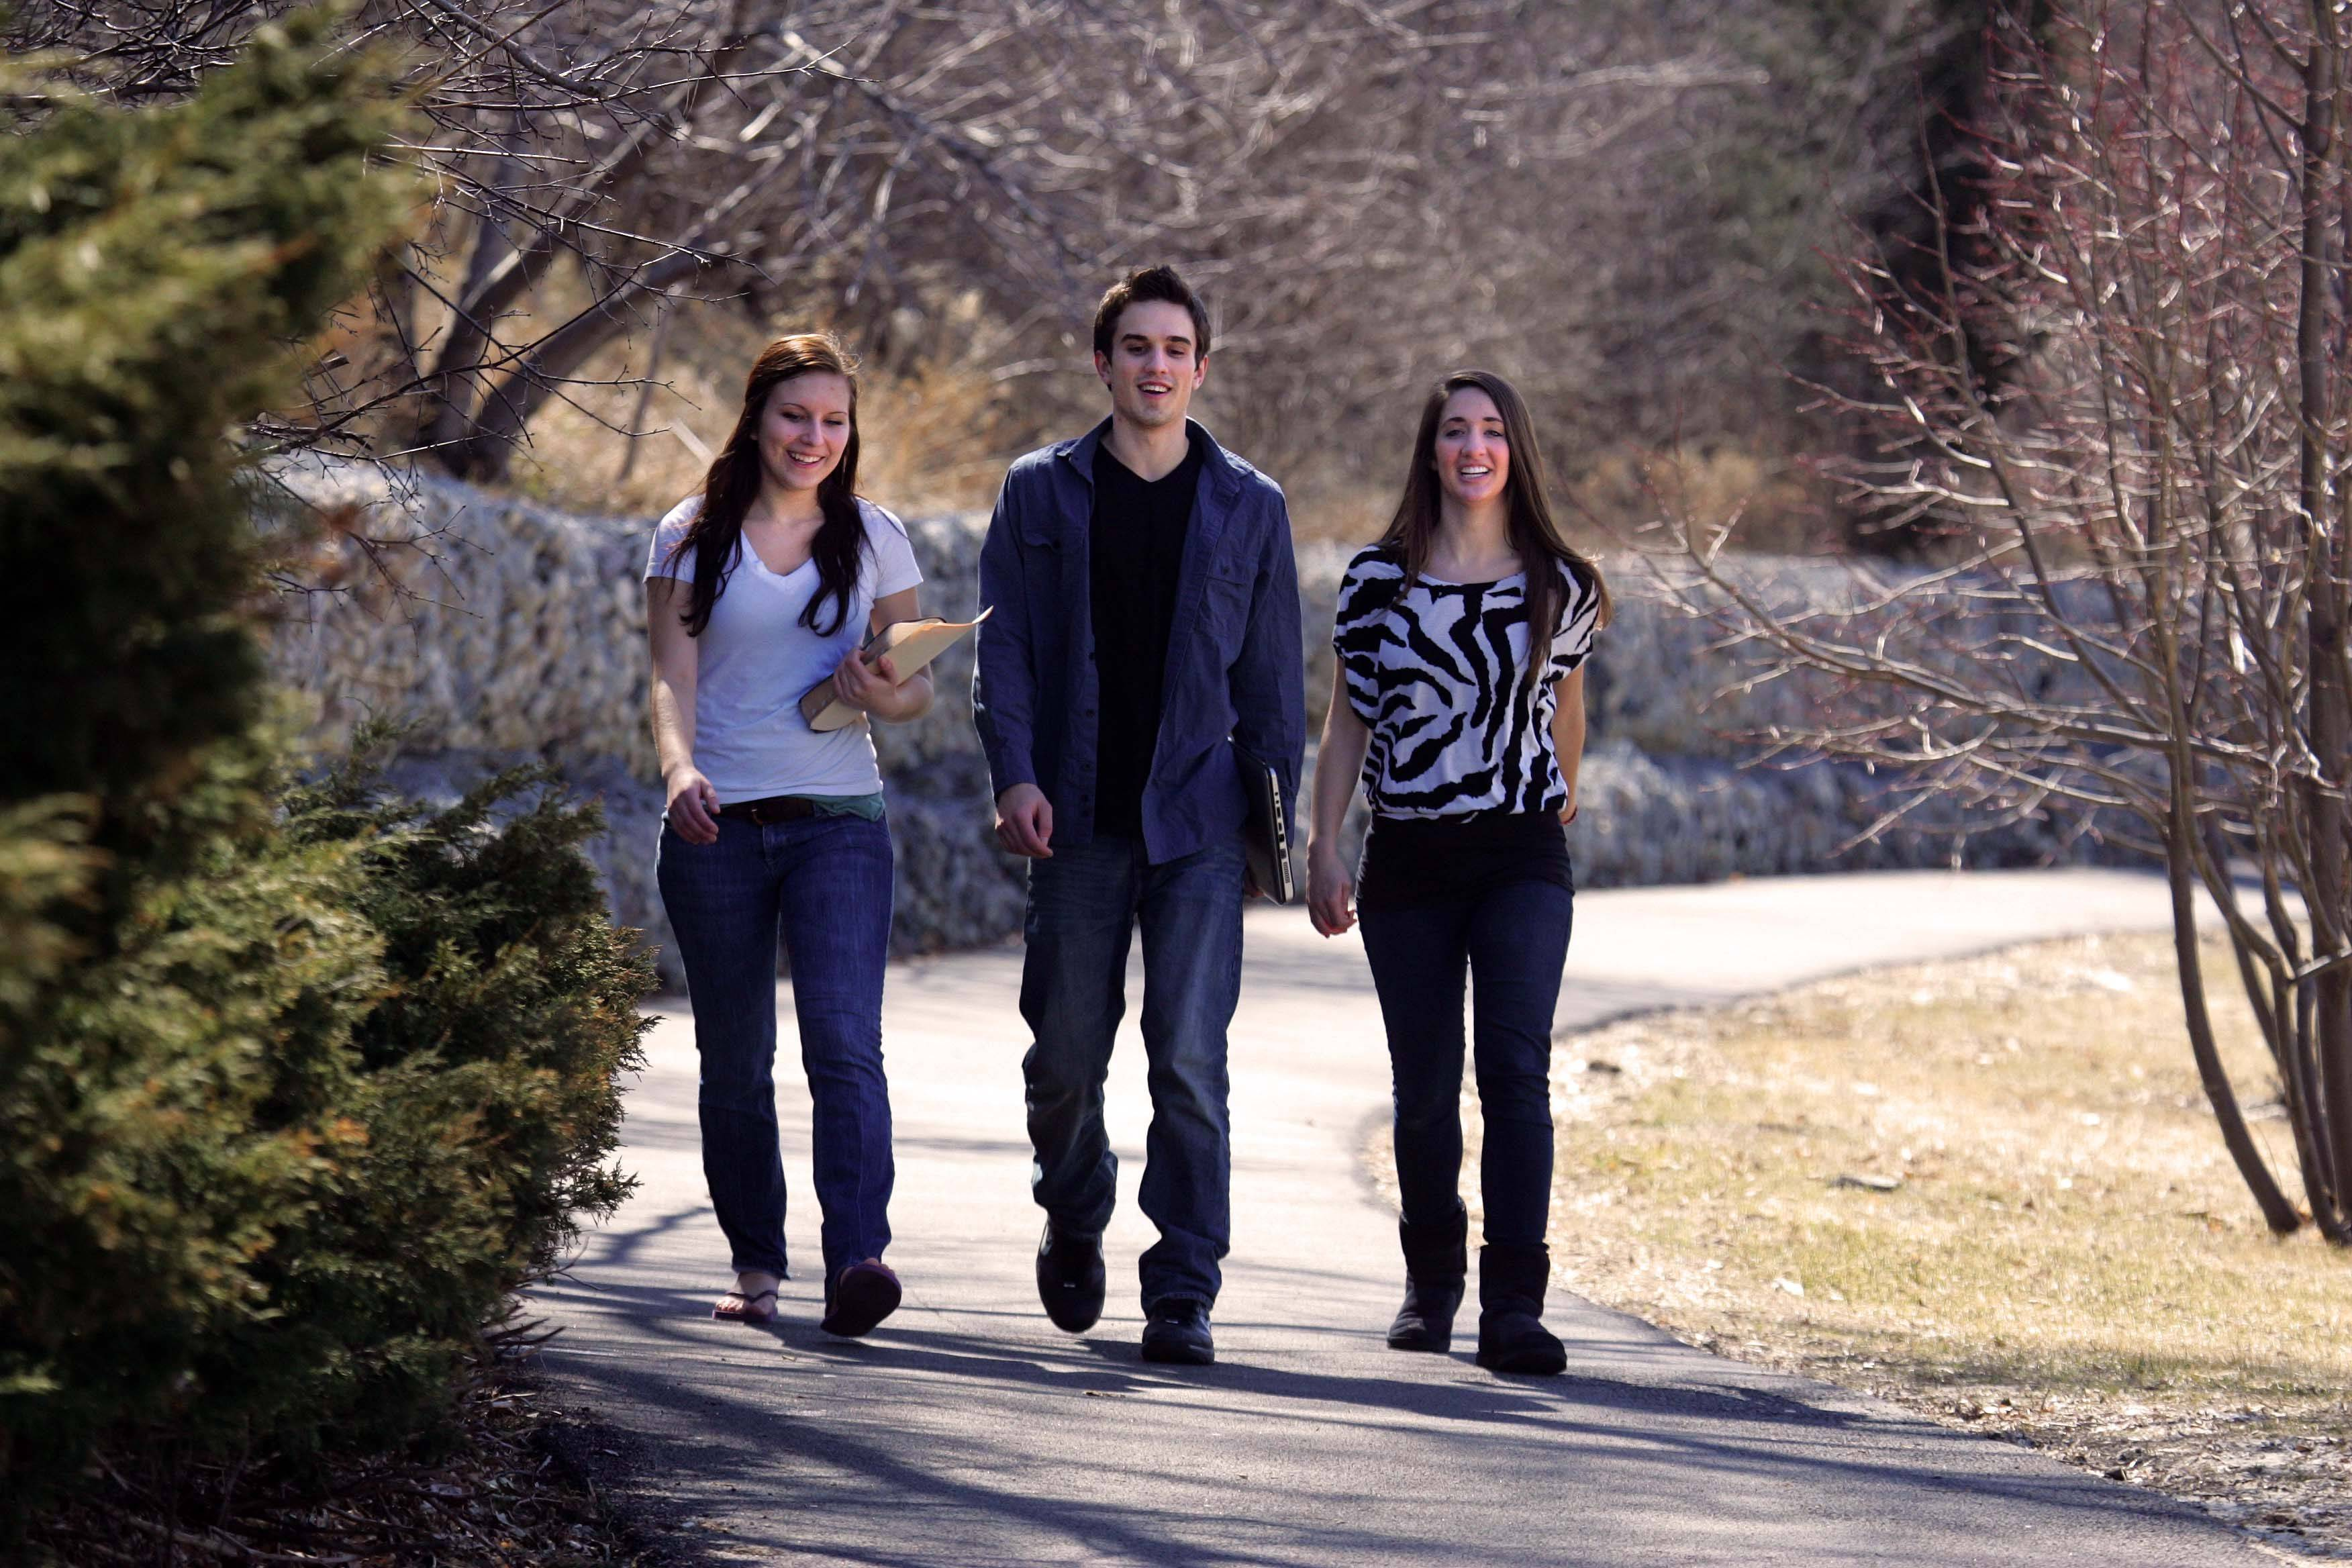 """This is the first time in forever that I have been able to walk anywhere without a coat,"" remarked Judson student Mike Nicosia, 20, as he walks to class with his friend Lauren Stengel, 19, right, and his sister Jessica Nicosia, 16, who were visiting Wednesday in Elgin."